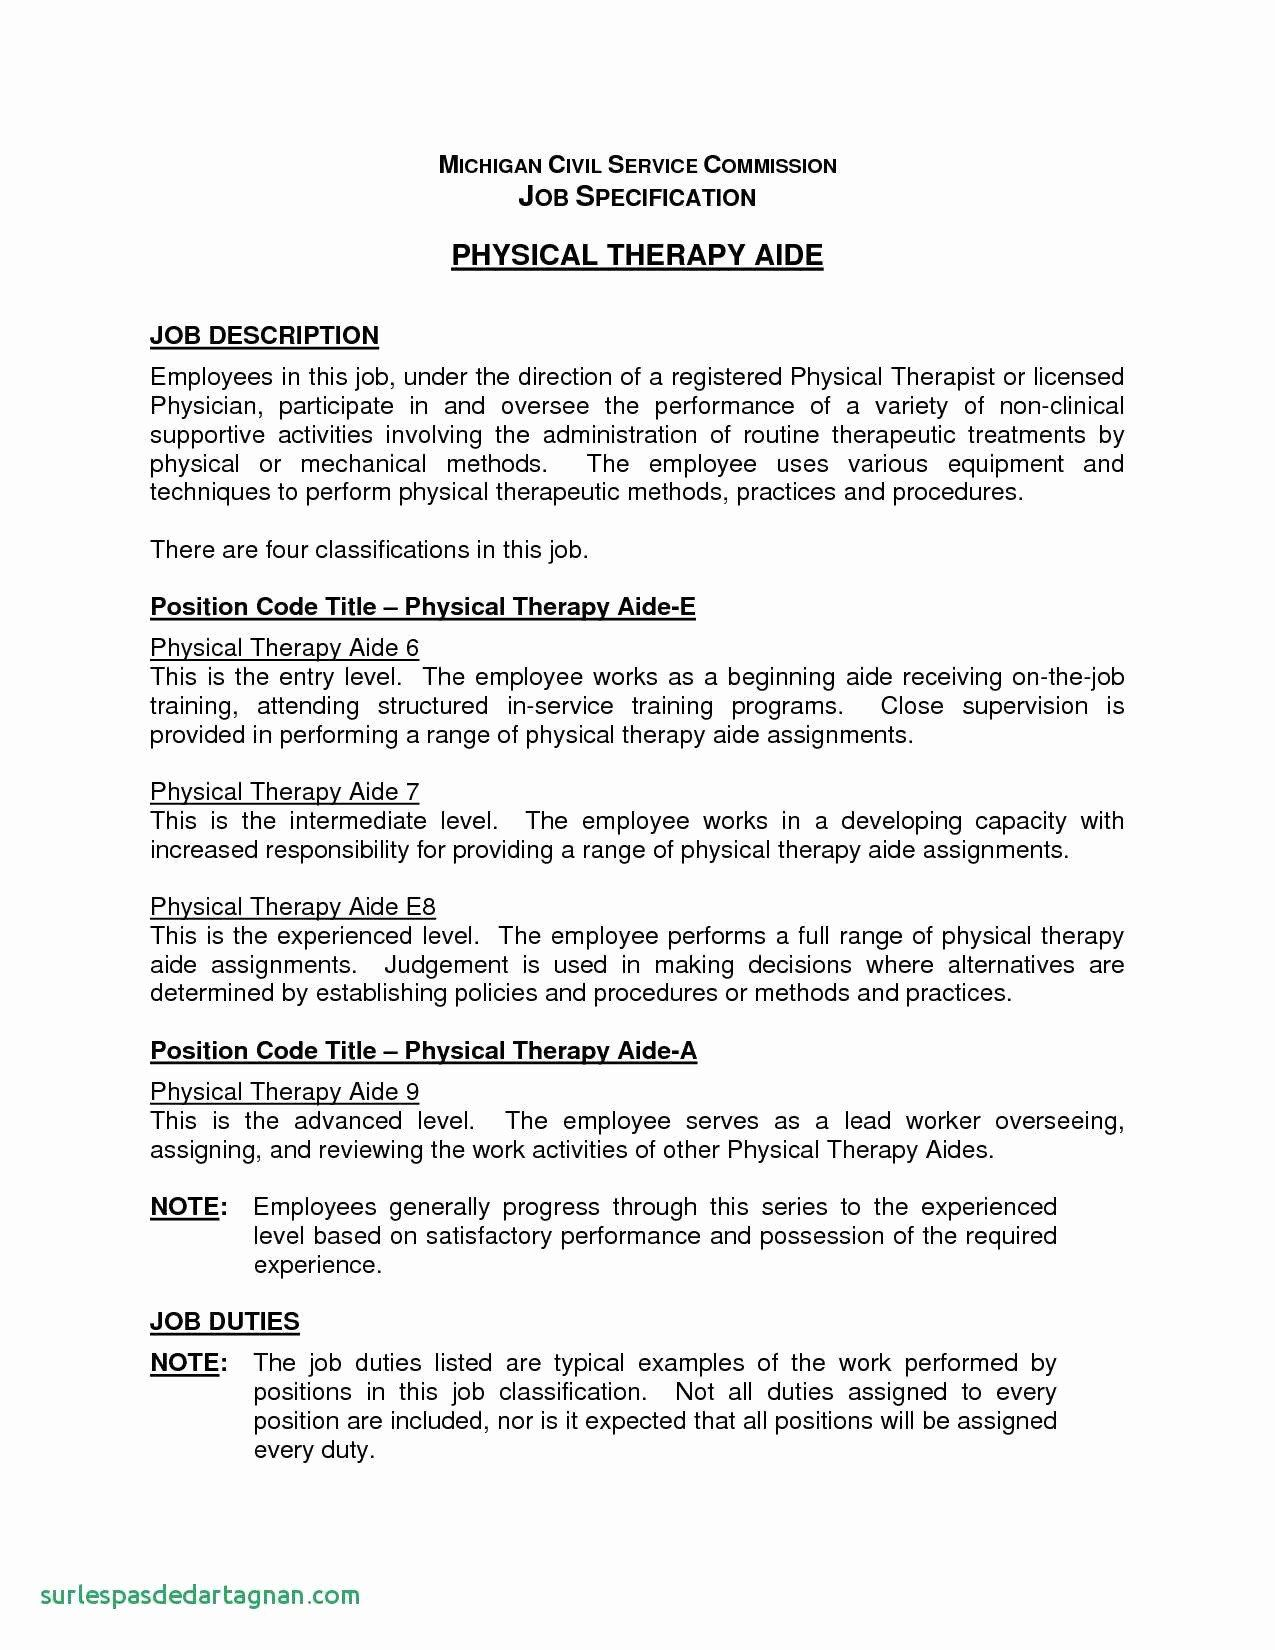 Physical therapist assistant Resume Best Of Physical